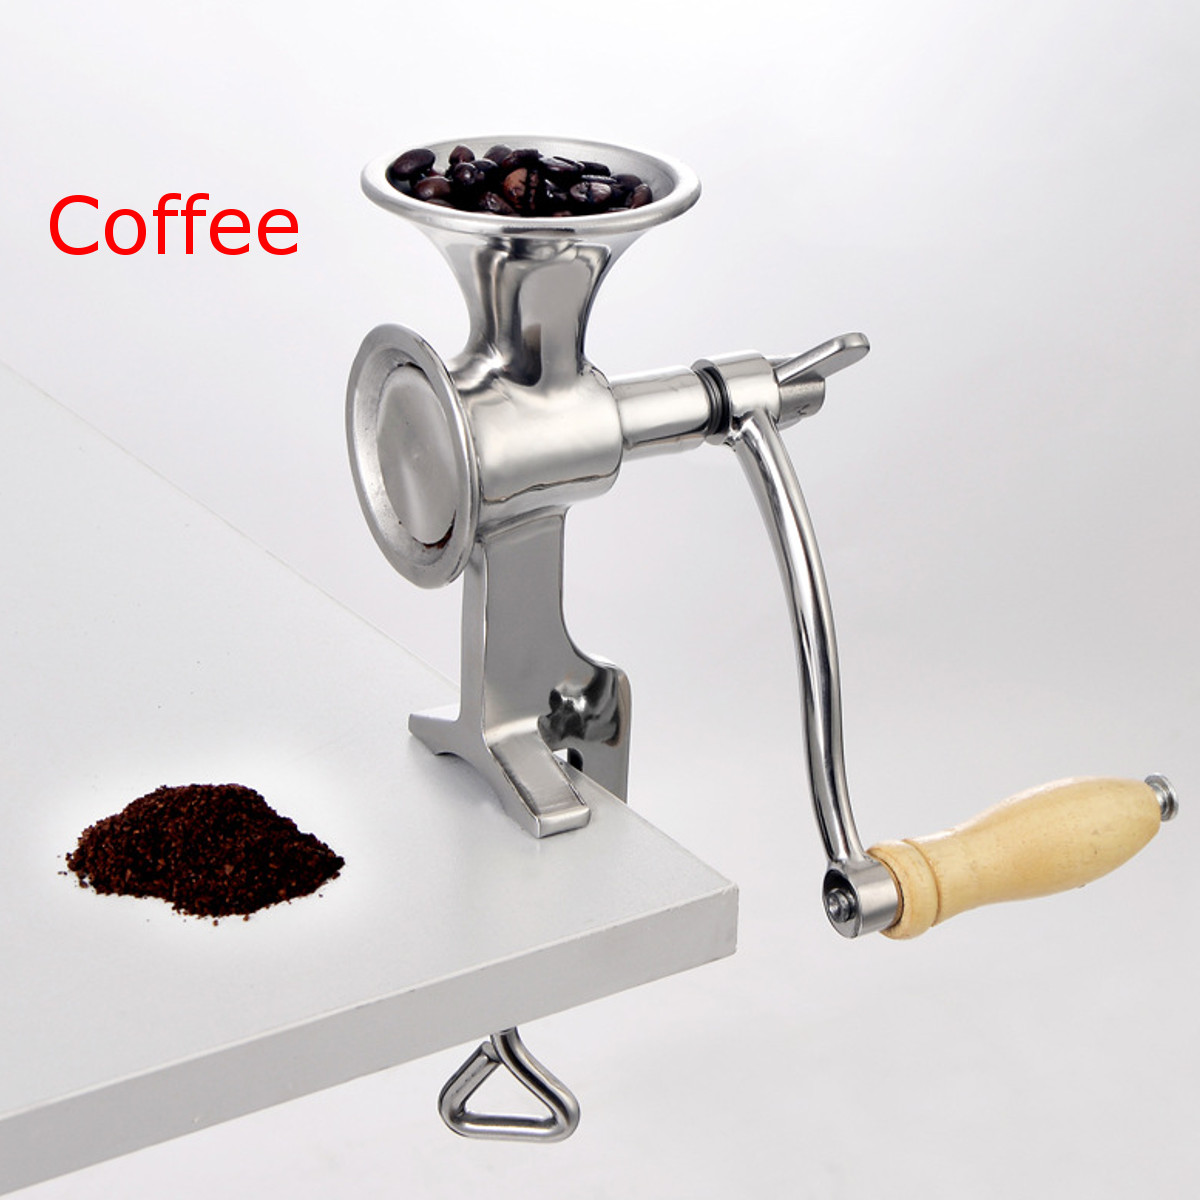 Adjustable Mill Grinder Stainless Steel Manual Coffee Beans Grinder Hand Grinding Tool